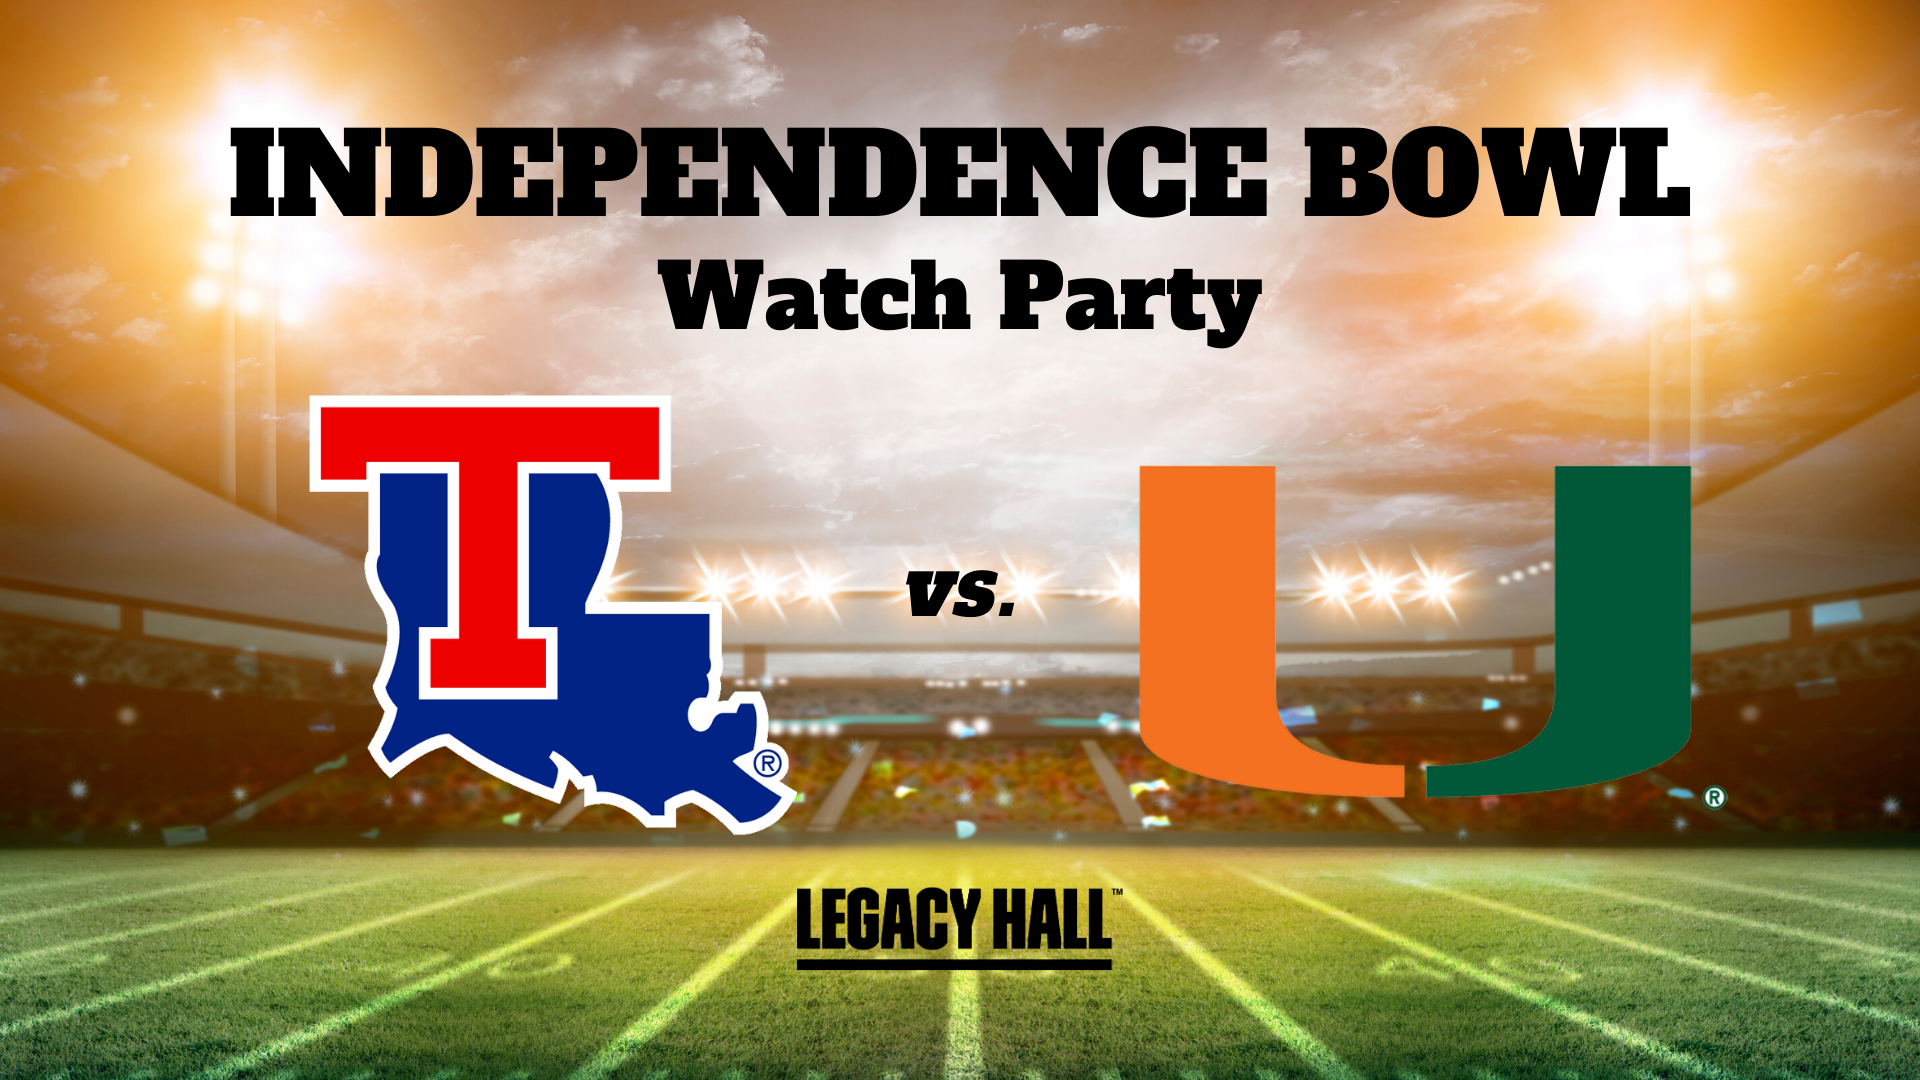 Independence Bowl Watch Party - hero